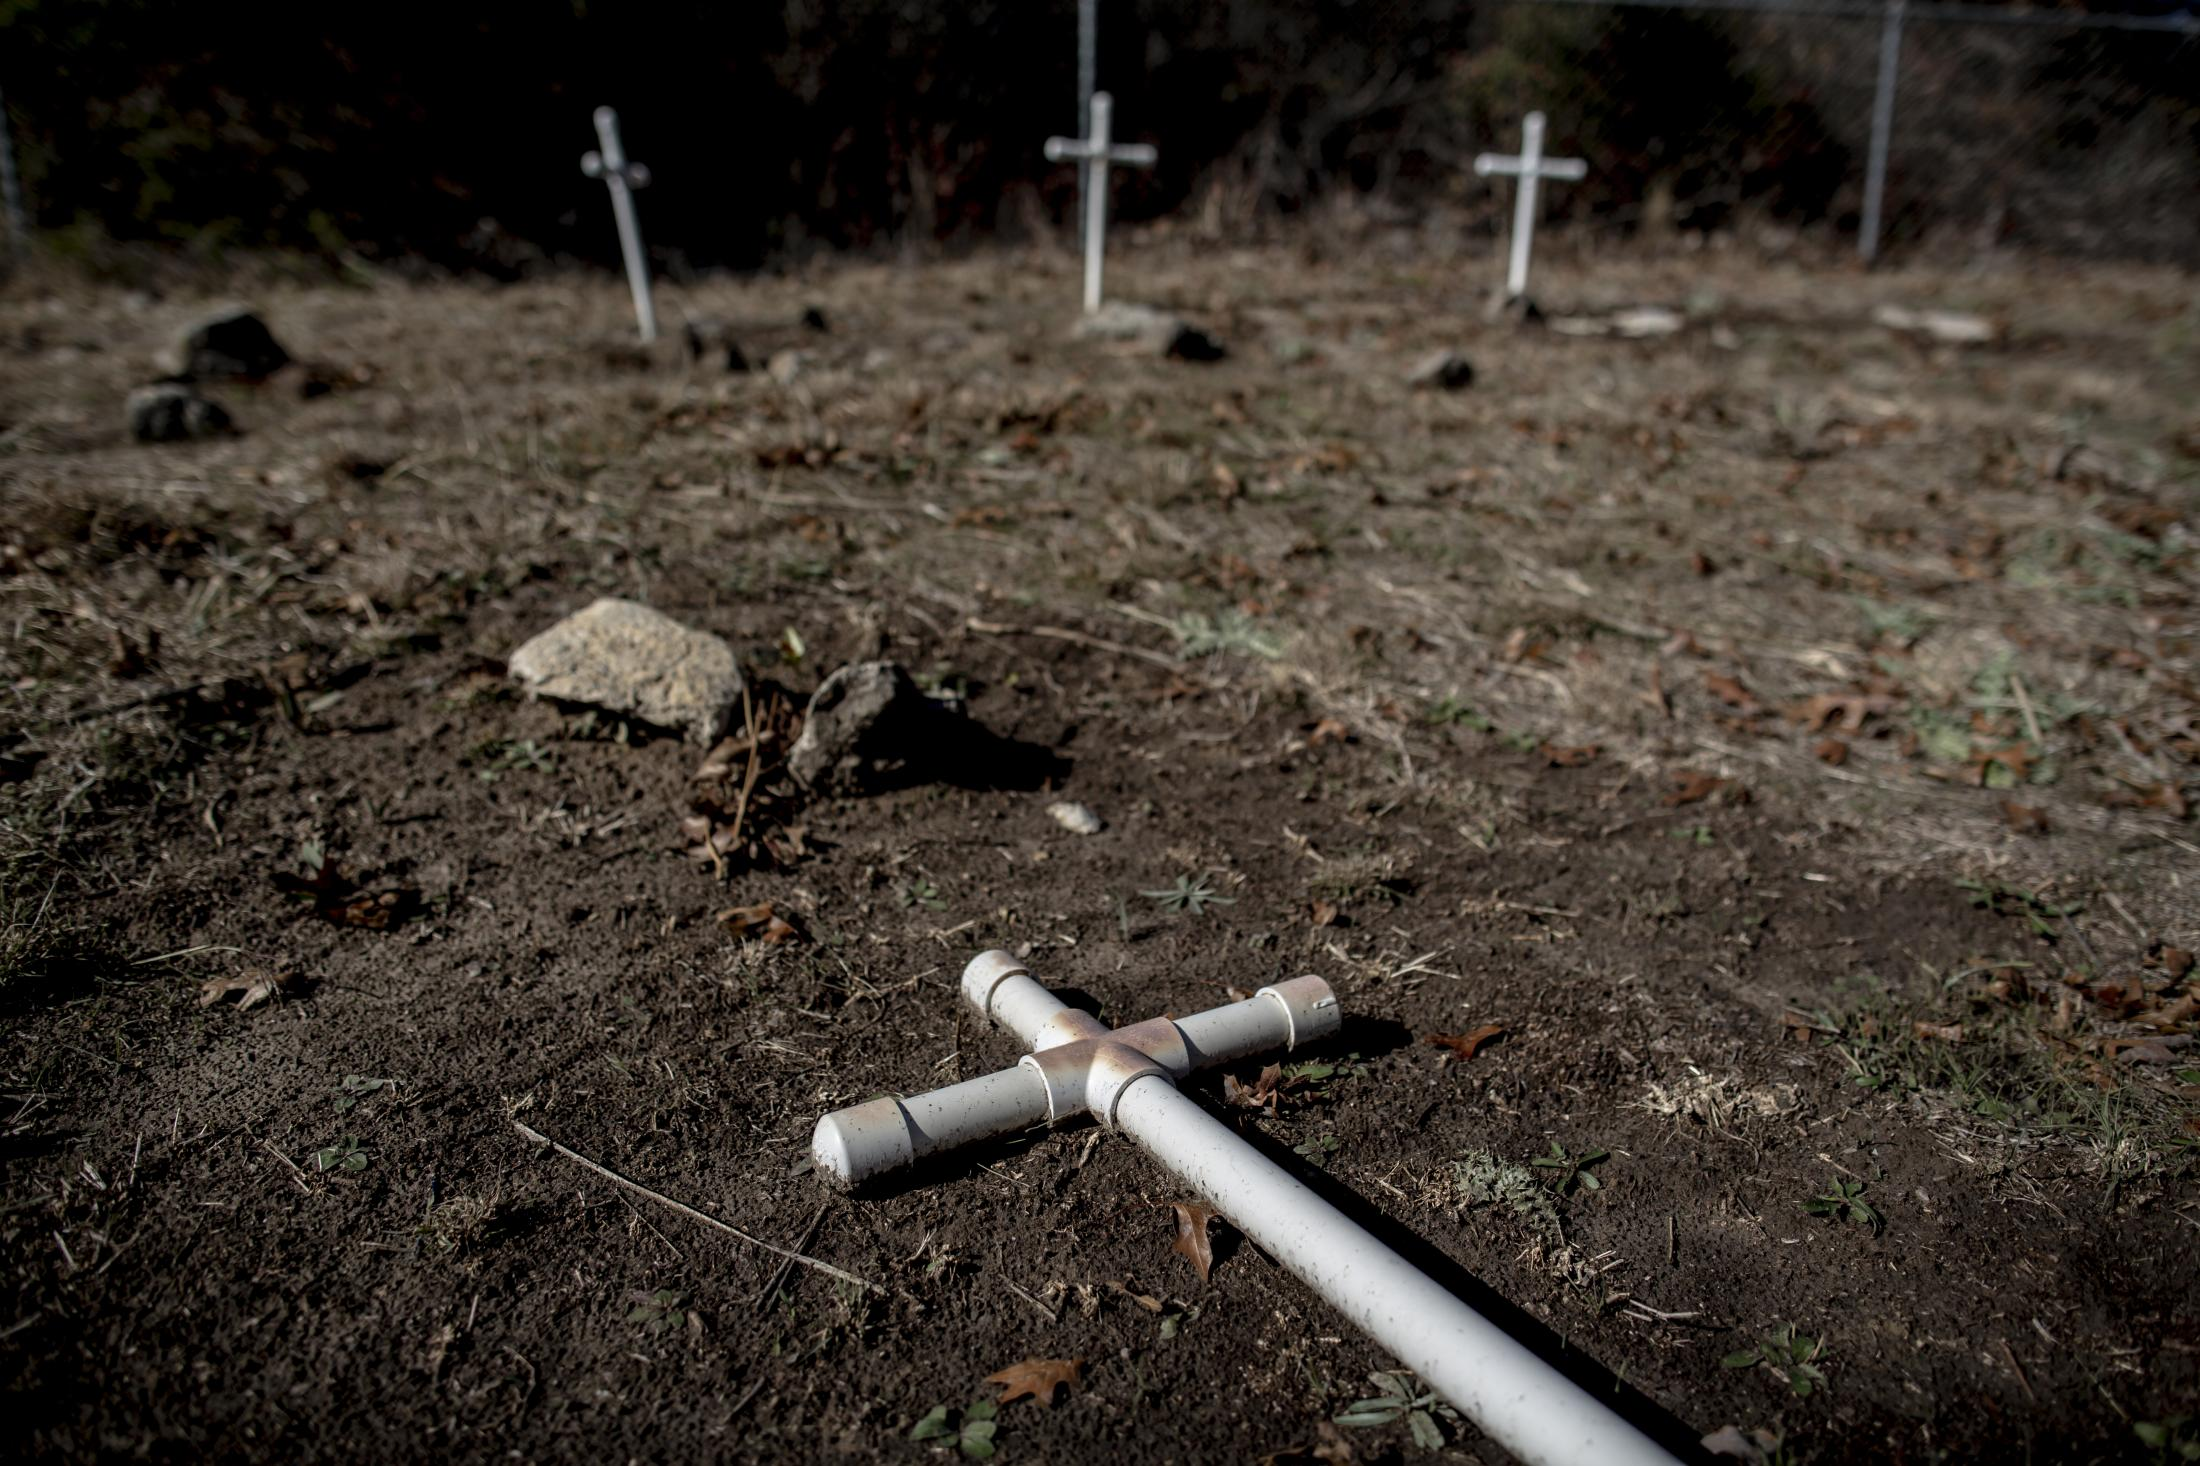 Crosses were placed by The Abandon Cemetery Association of Parker County to mark newly discovered graves of members of Anthony Crawford and James Grays Great Great Grandparents and family. The cemetery that belonged to their Great Great Grandparents who were slaves during the Confederacy in the 1800s. The brothers will be the first living relatives to visit these graves since the 1900s.